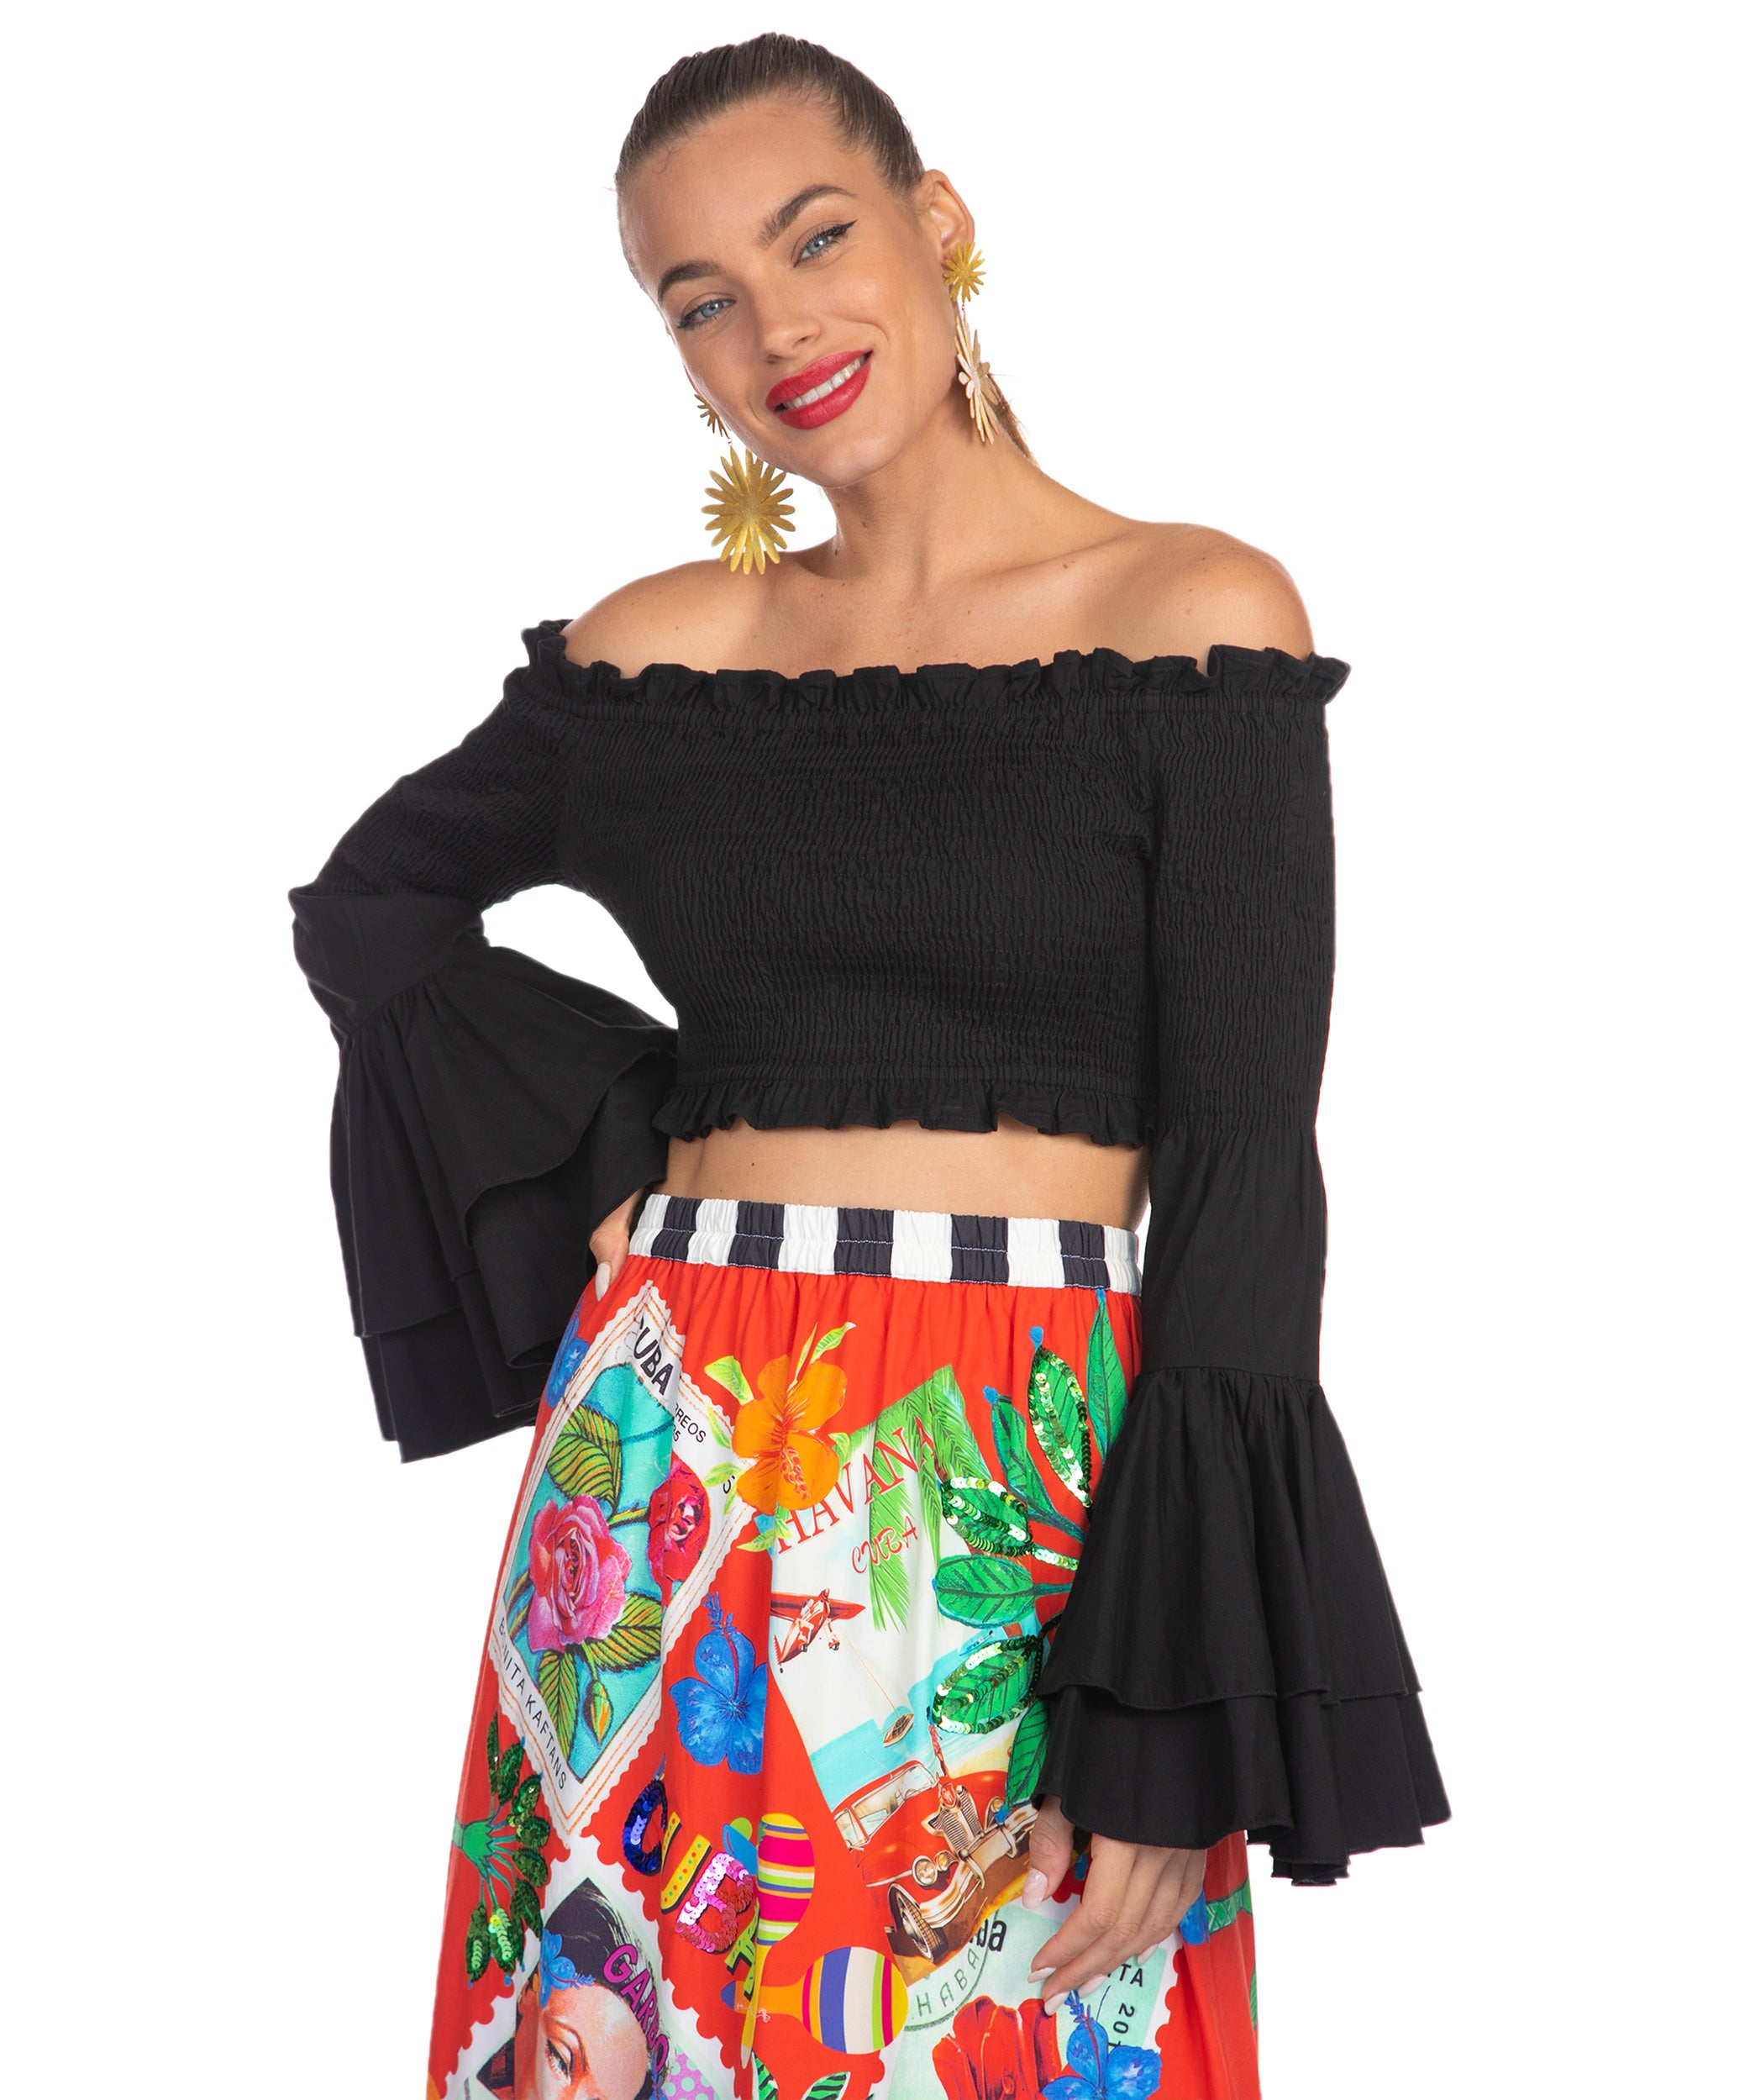 The Black Salsa Top by Bonita Collective